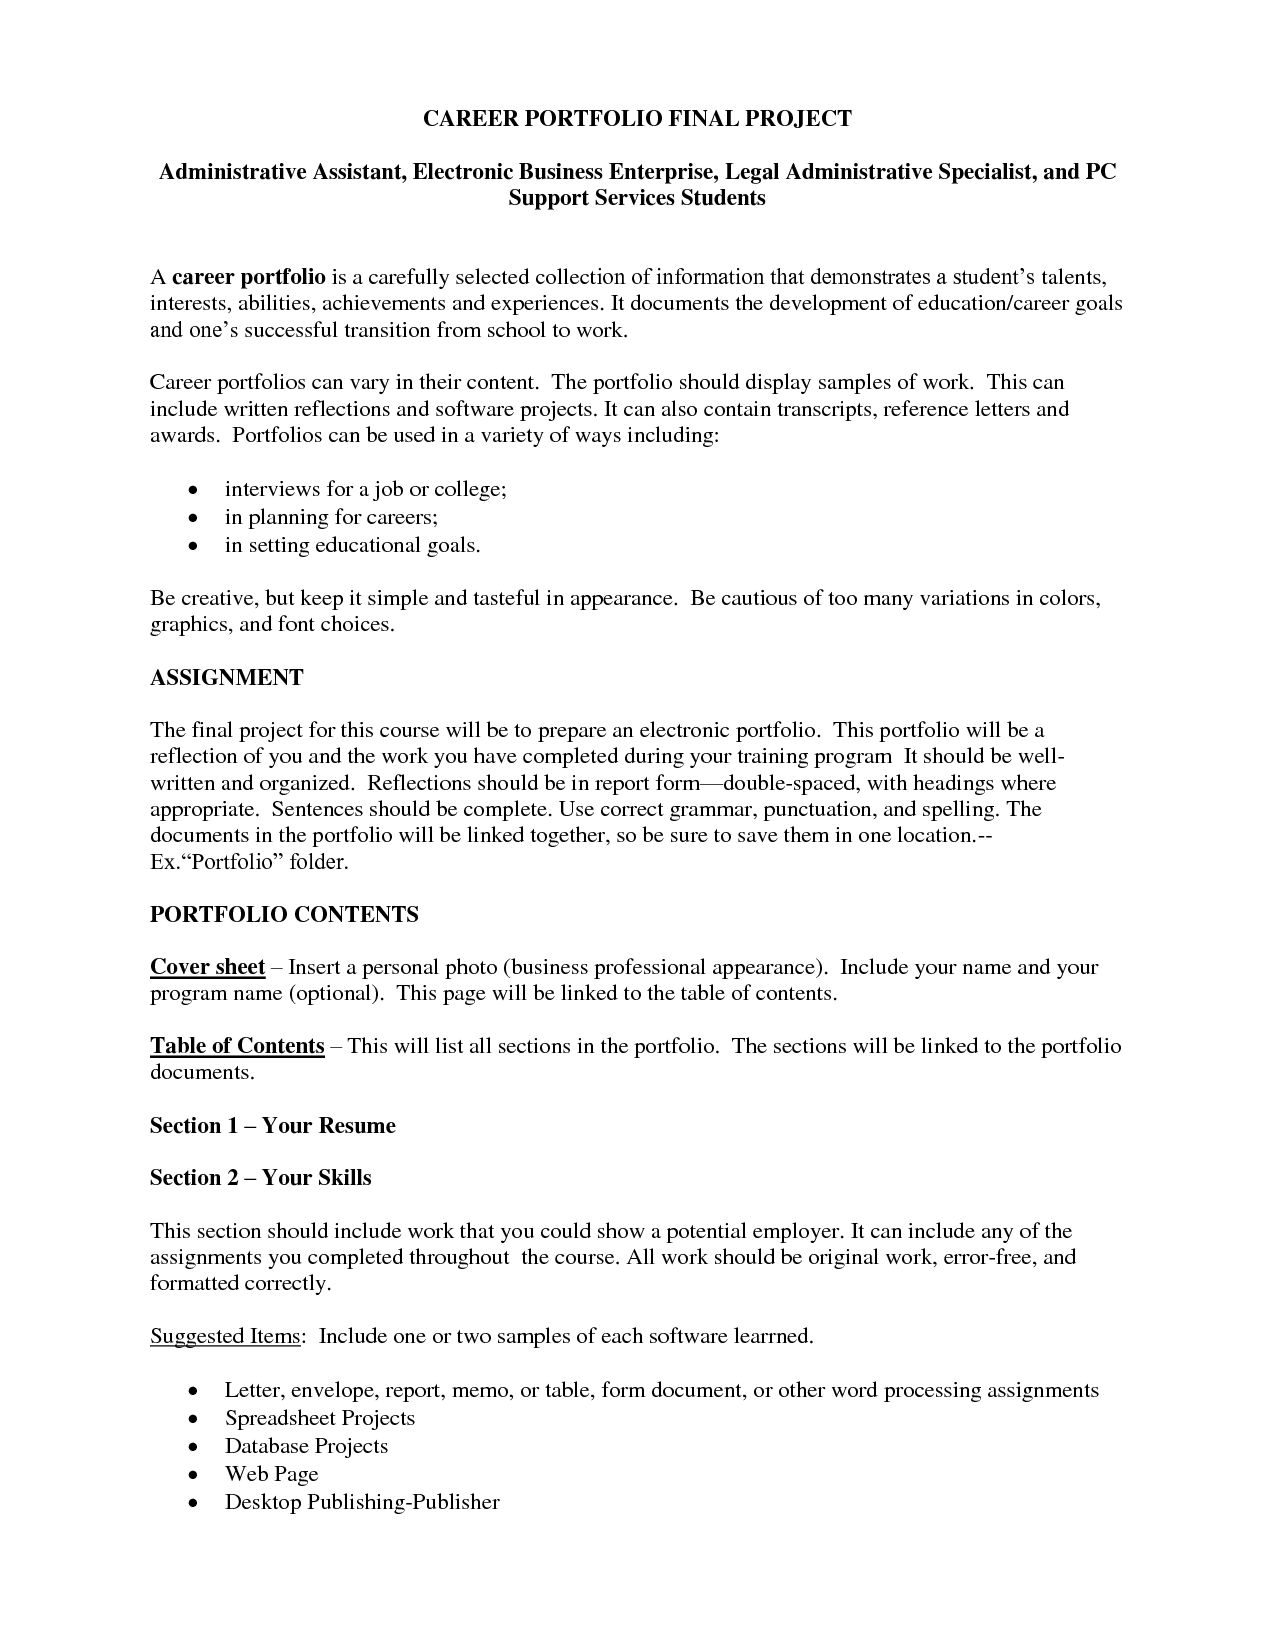 resume template for administrative assistant sample cover executive free samples blue sky resumes - Example Of Administrative Assistant Resume